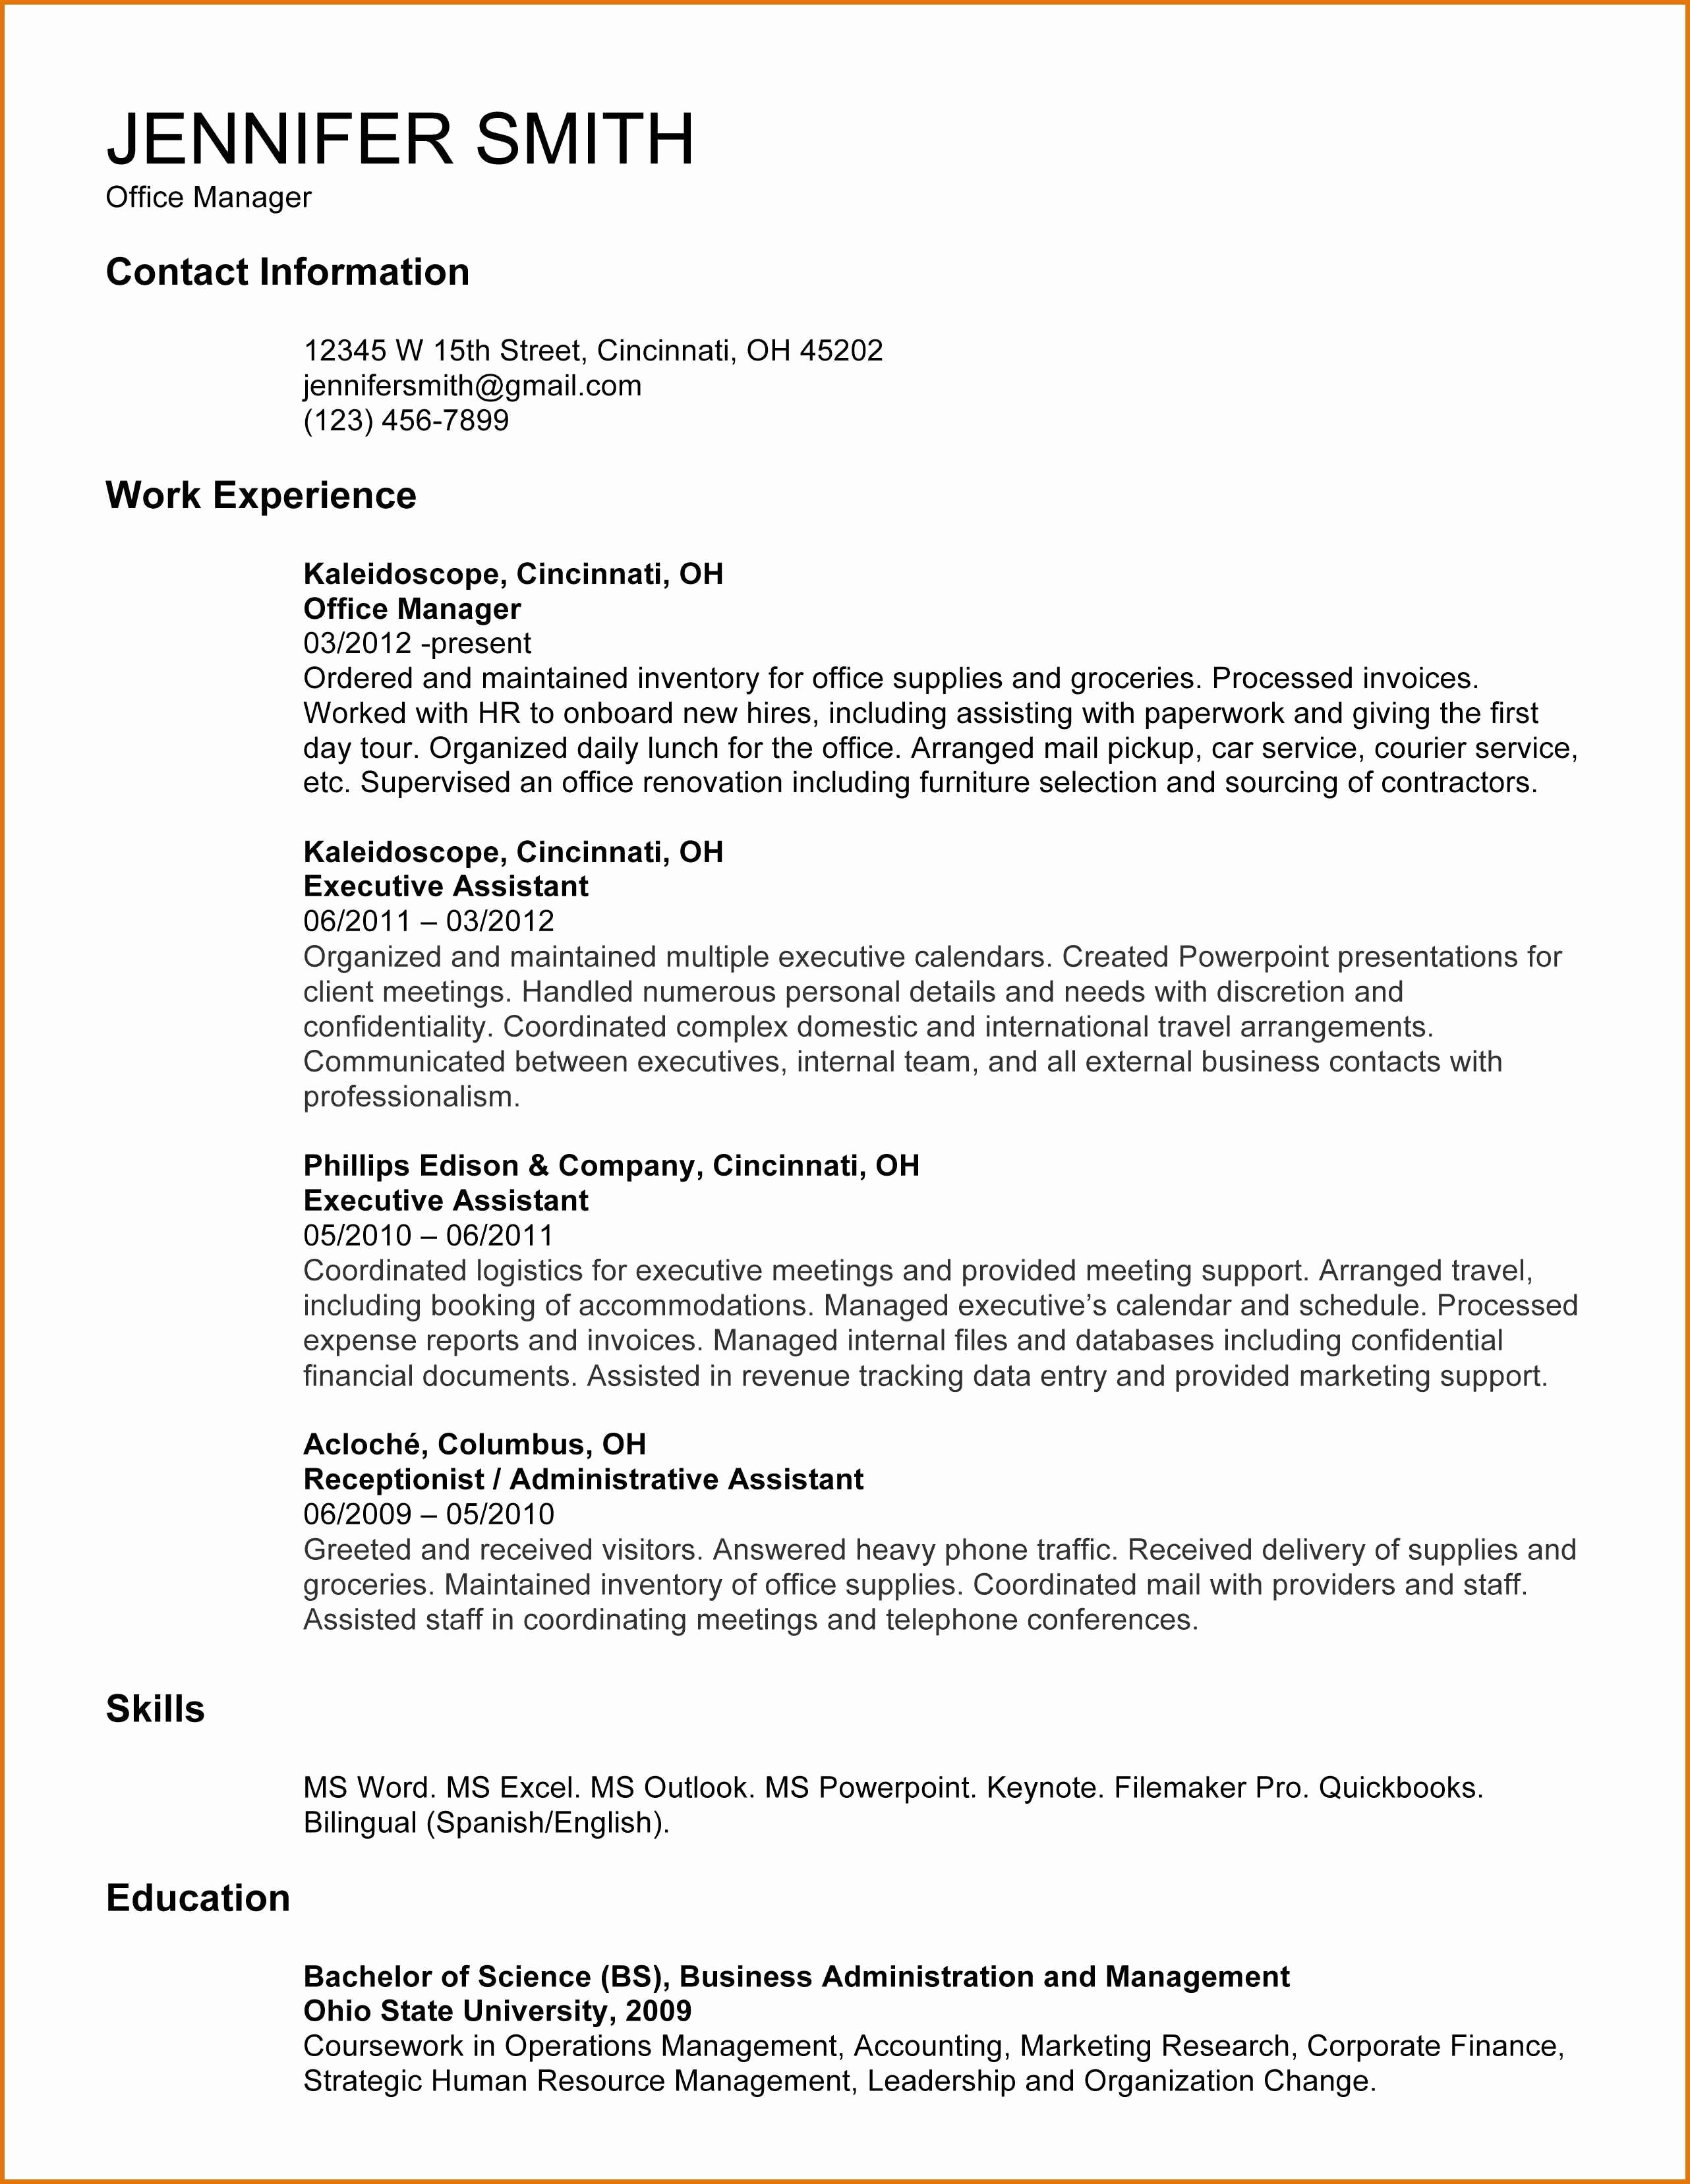 sponsorship cover letter template Collection-Cover Letter for Portfolio ficer Refrence Sponsorship Levels Template 29 Od Specialist Cover Letter Fire 14-m